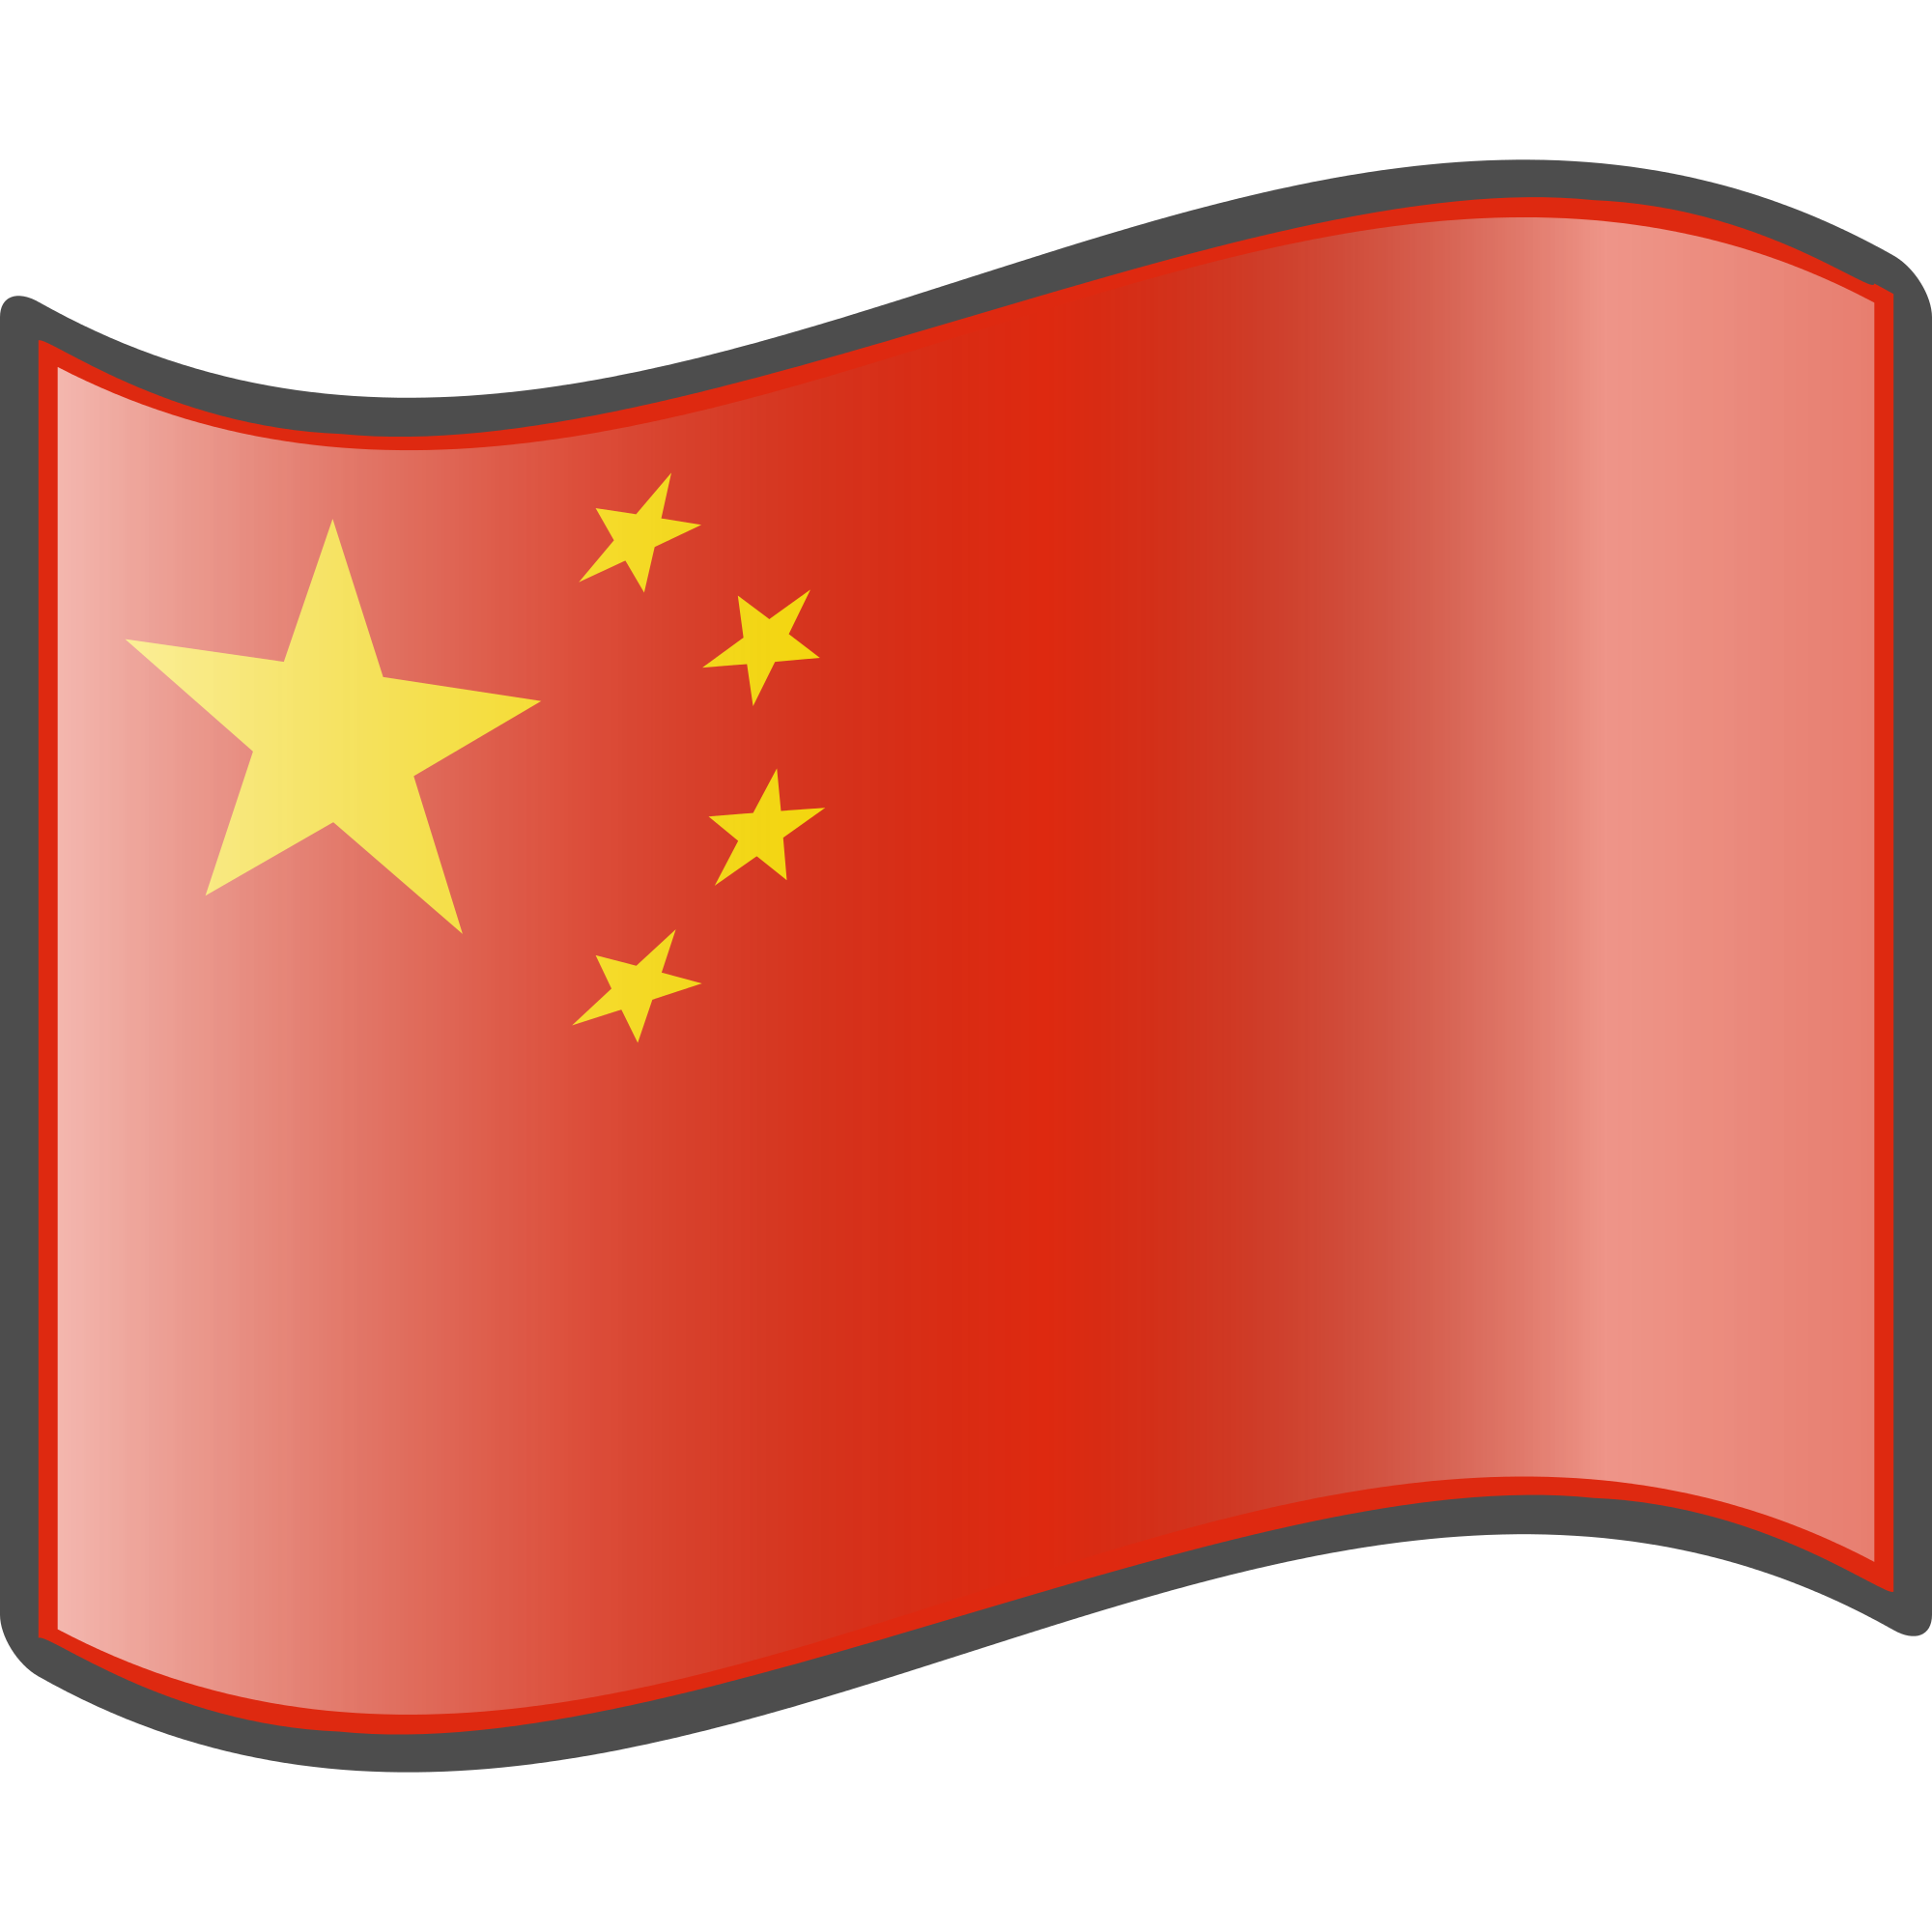 China clipart china flag Open Commons svg File:Nuvola Chinese